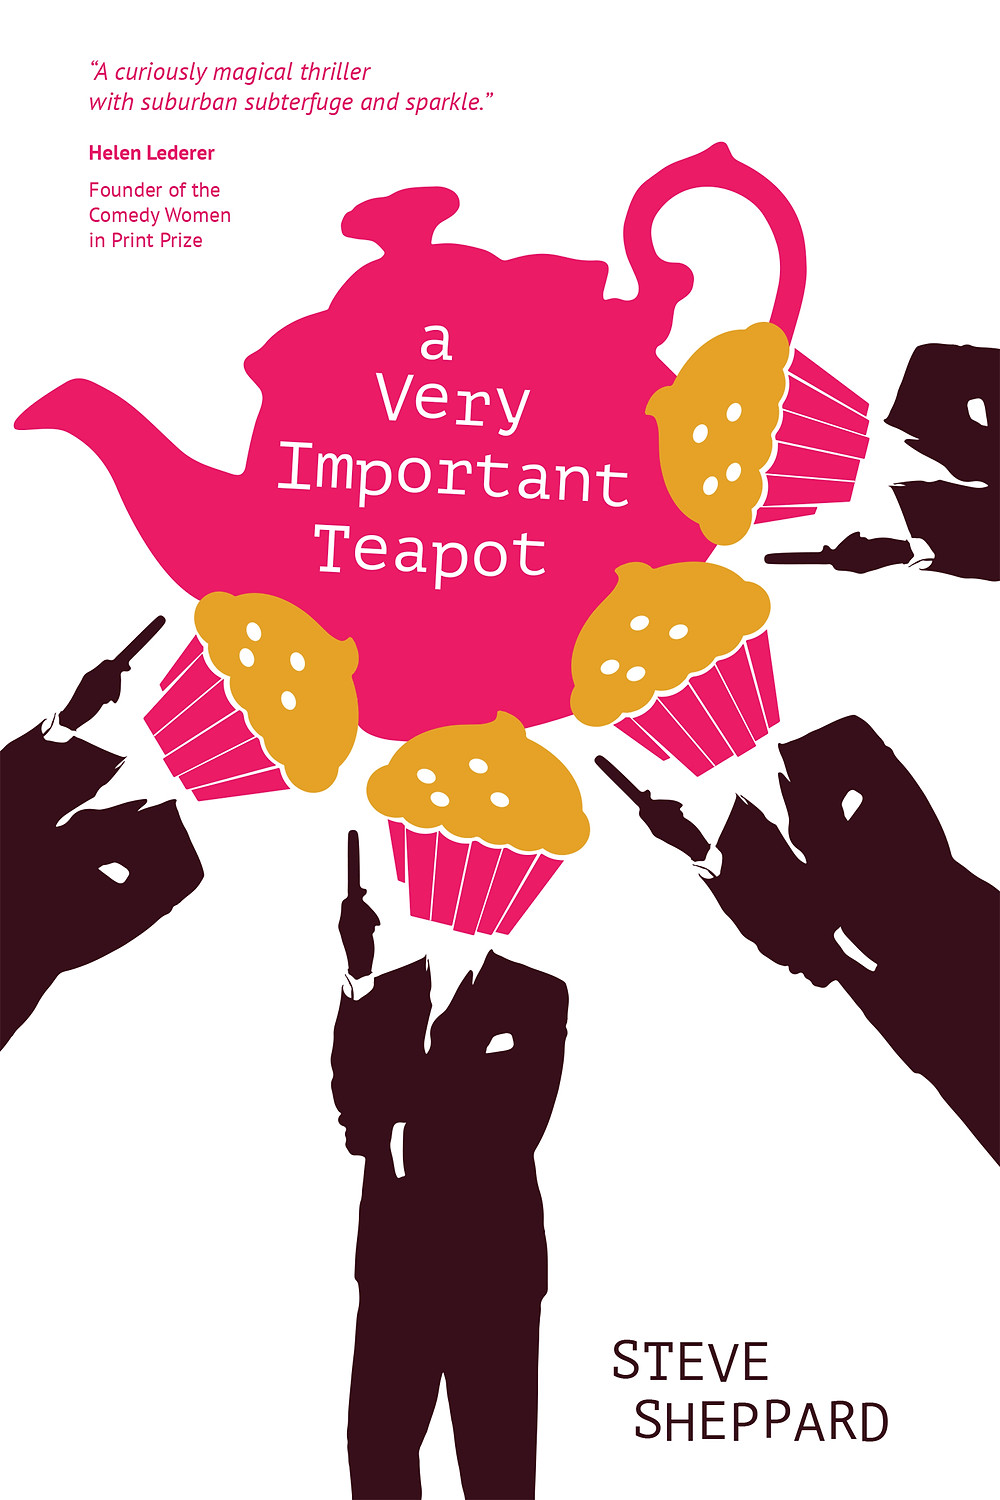 Book cover of a comedy spoof spy thriller, A Very Important Teapot by Steve Sheppard